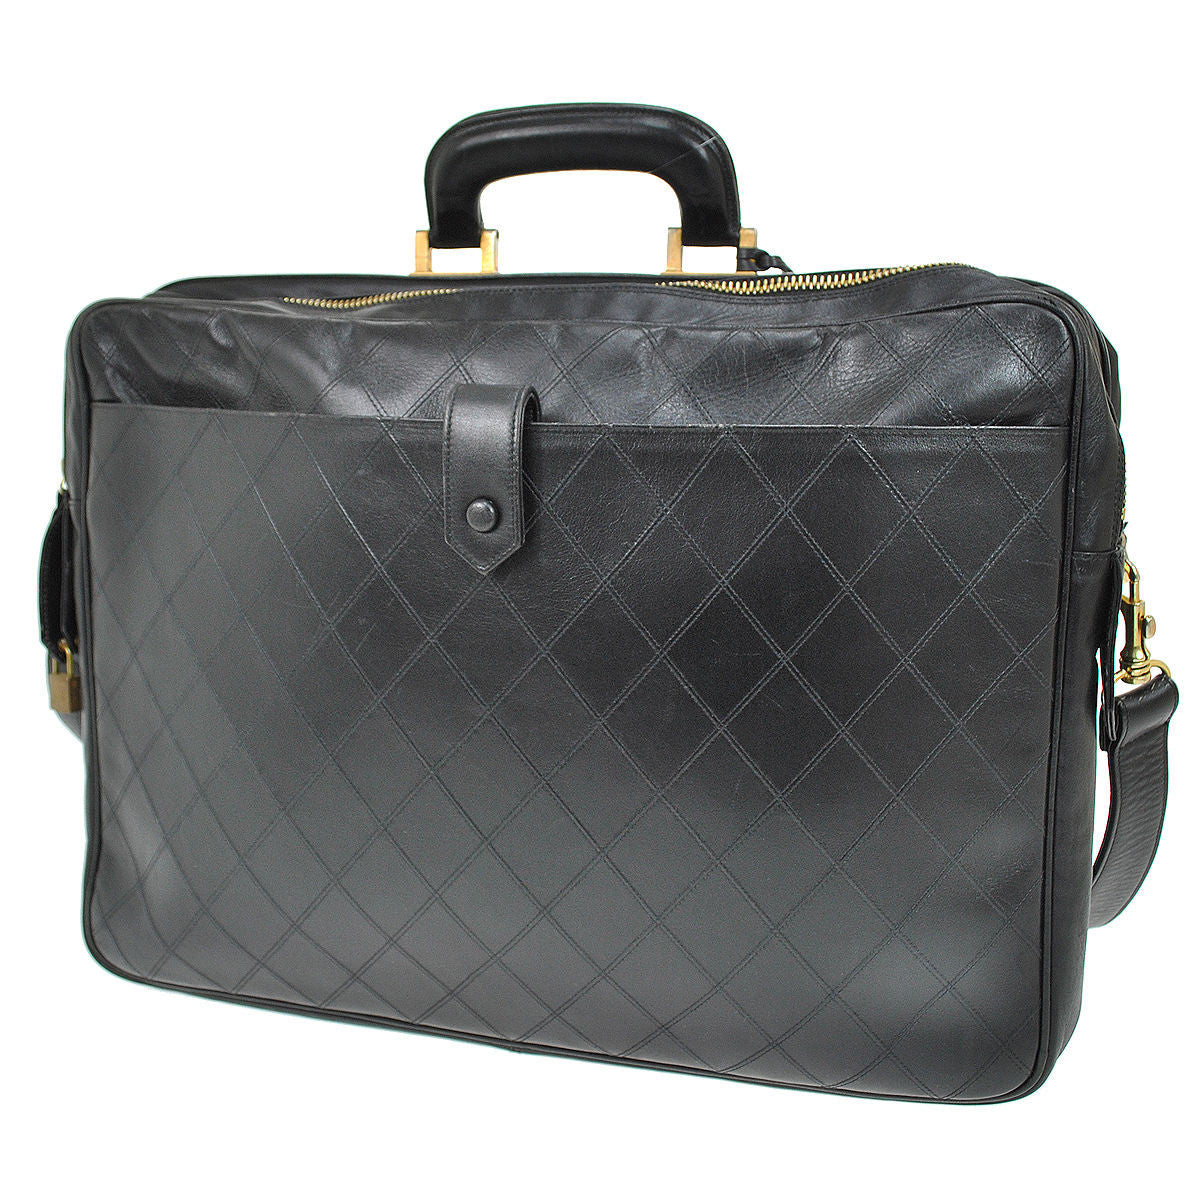 CHANEL Black Lambskin Quilted Messenger Travel Bag